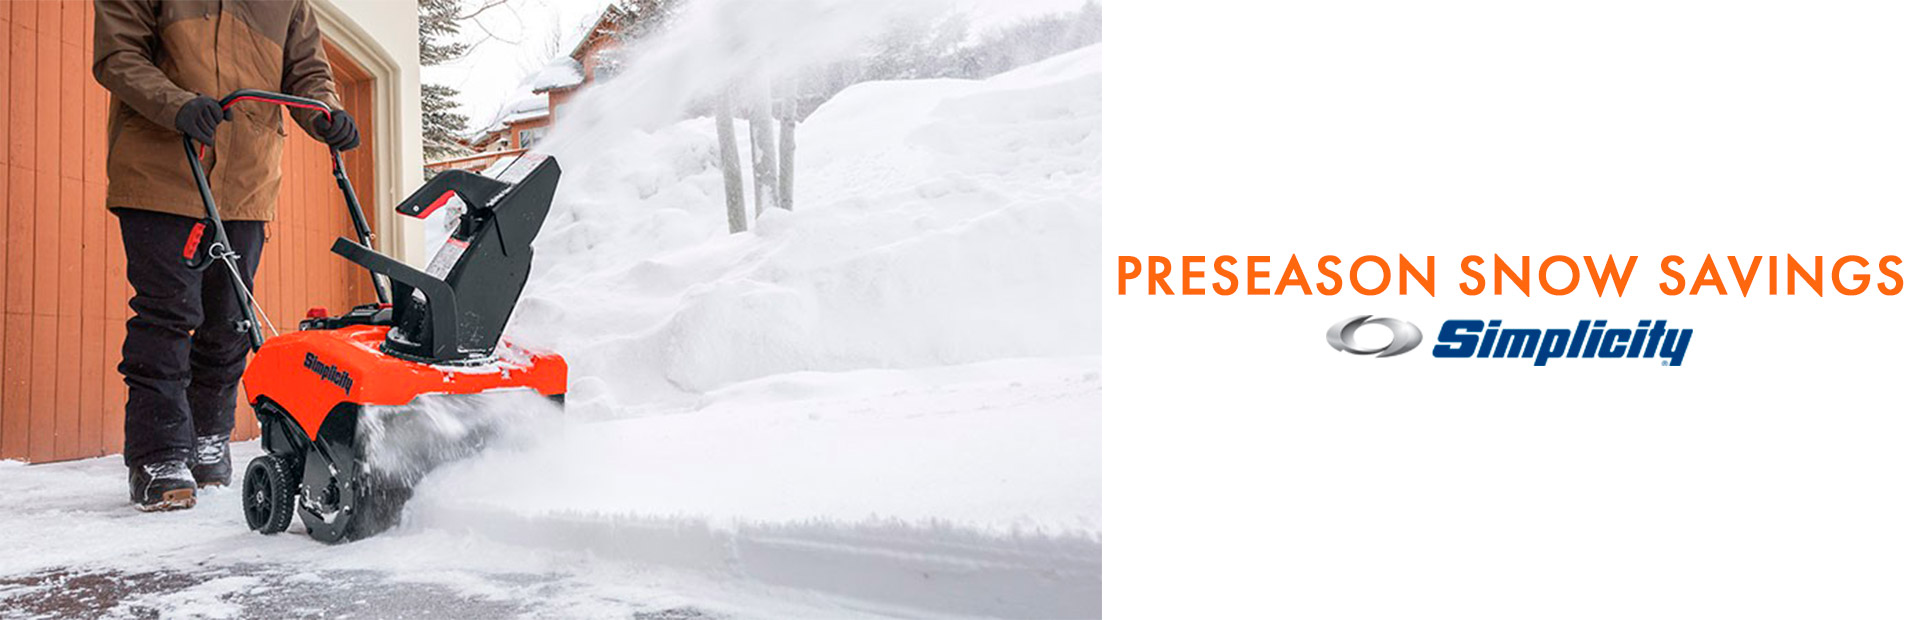 Simplicity: PRESEASON SNOW SAVINGS